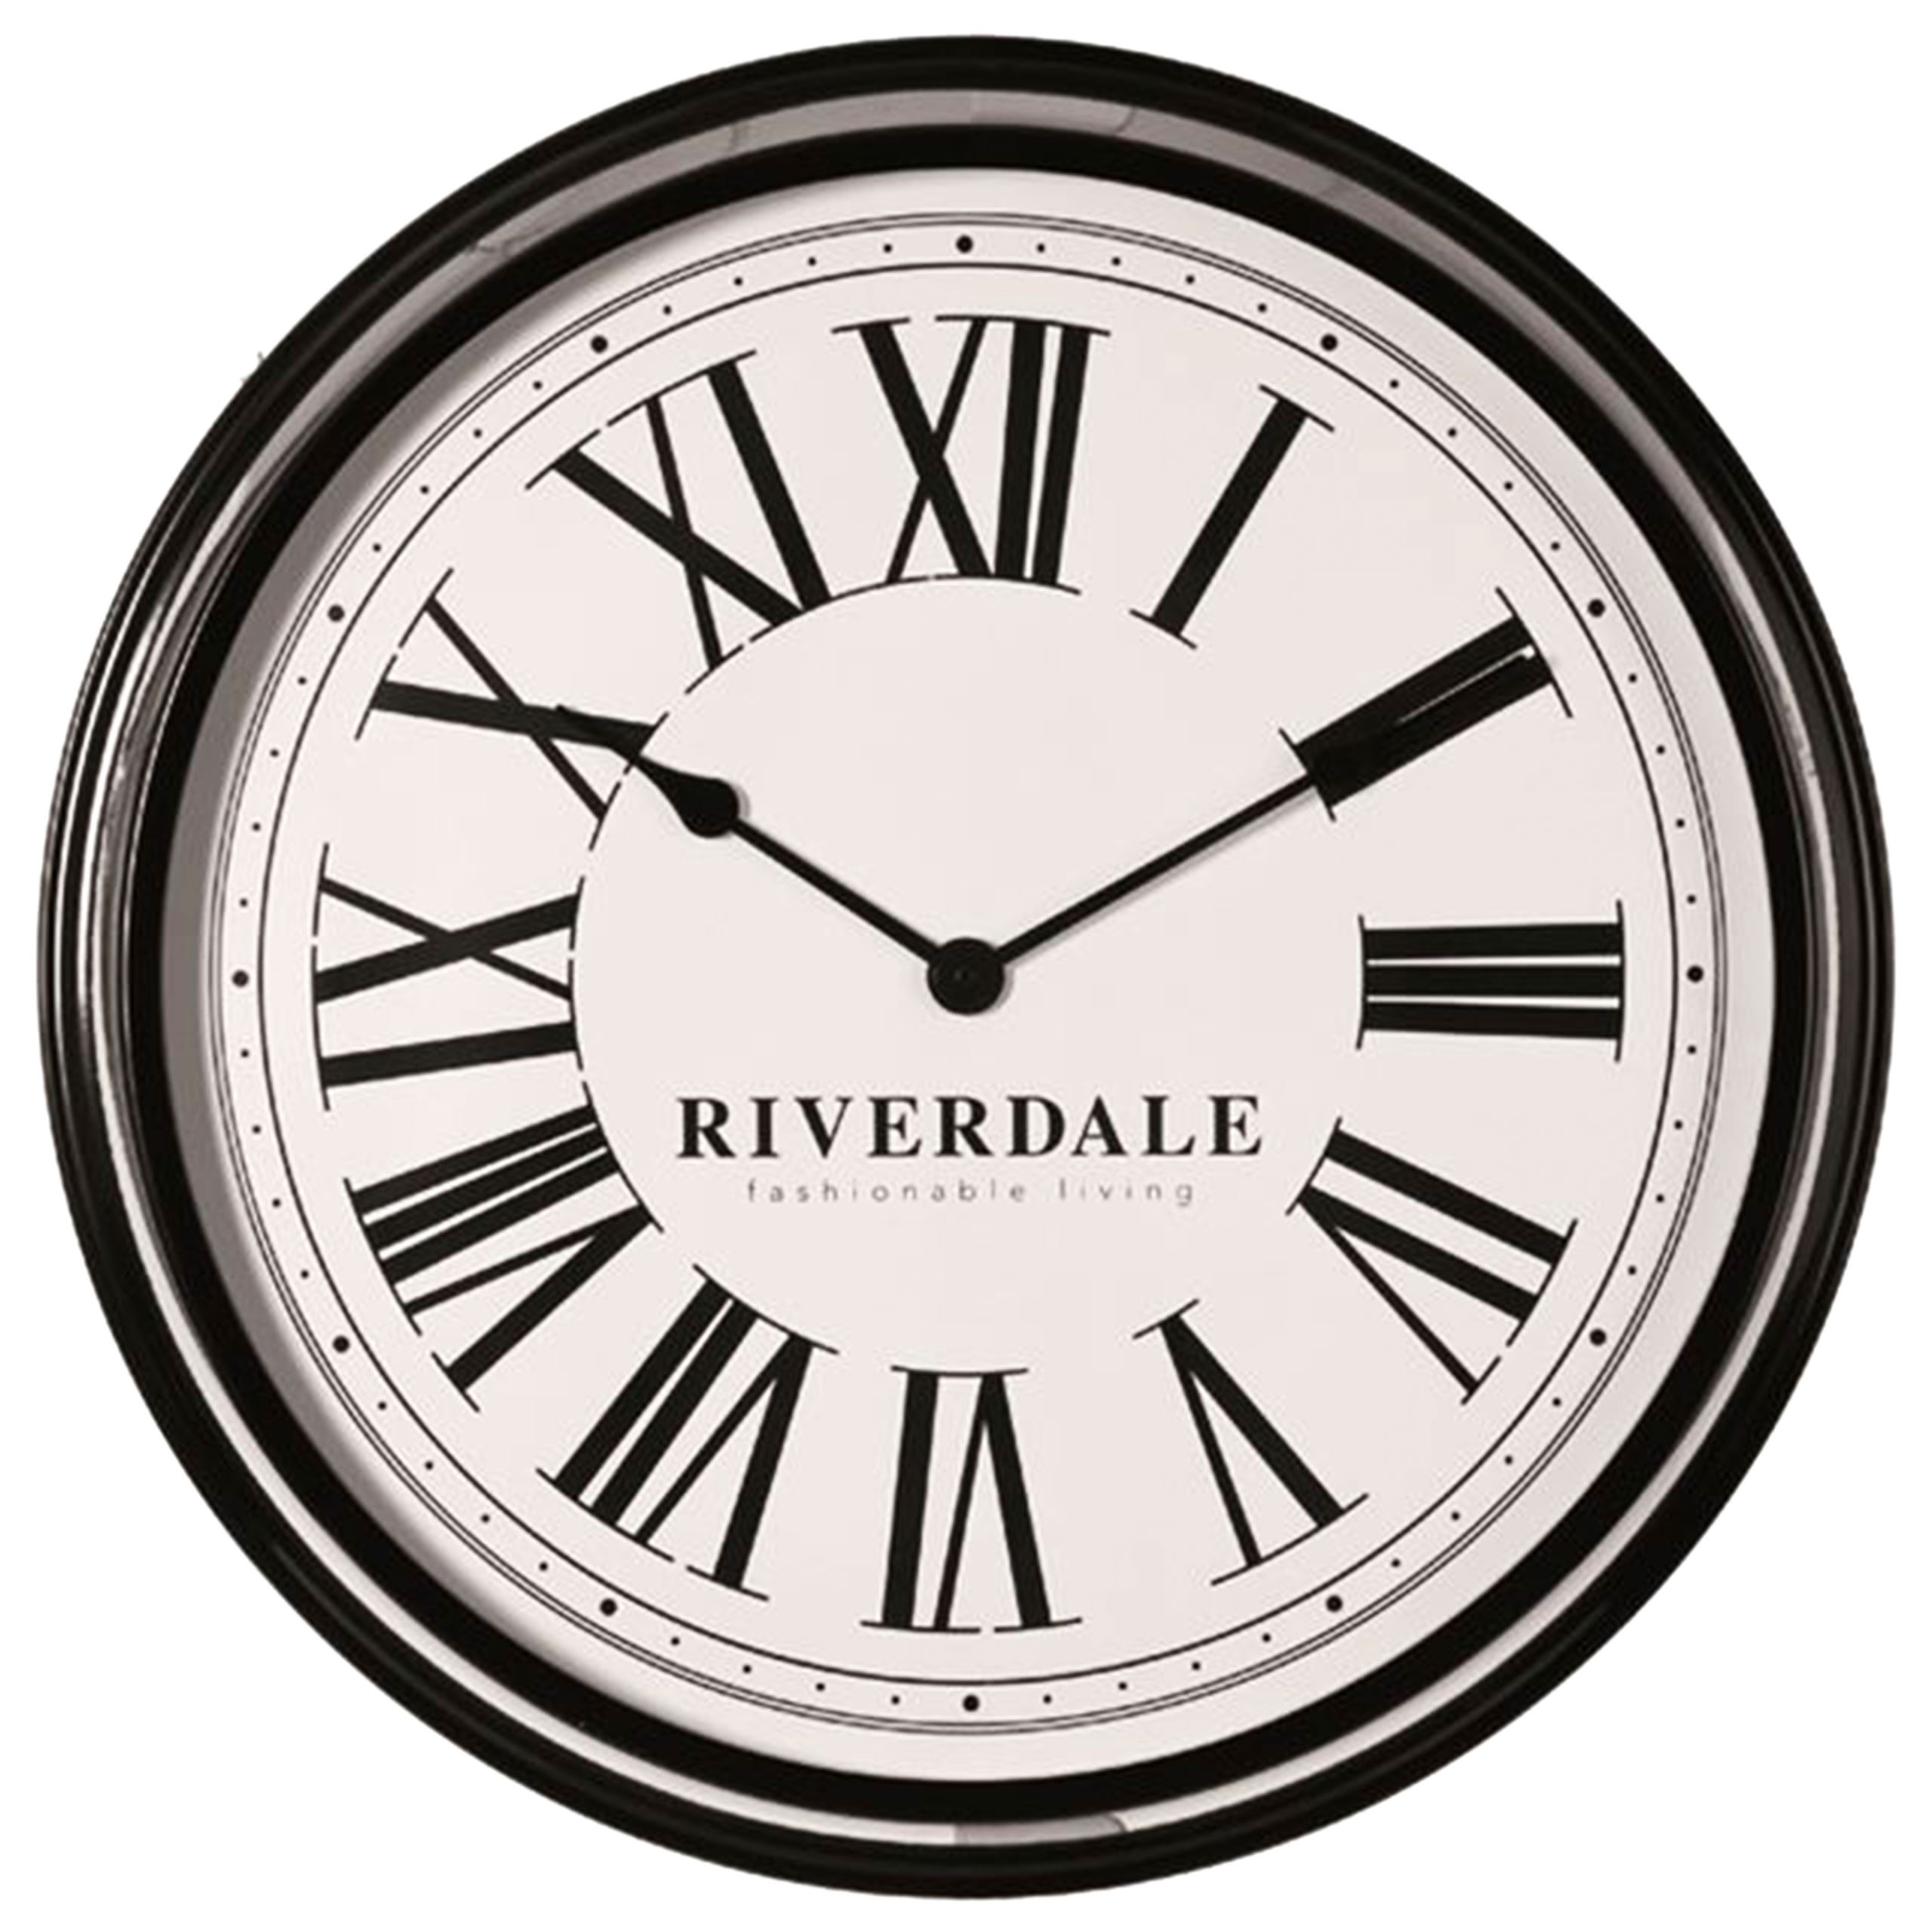 riverdale metall wanduhr time 68cm schwarz wei wohnaccessoires fenster wanddeko wanddeko. Black Bedroom Furniture Sets. Home Design Ideas